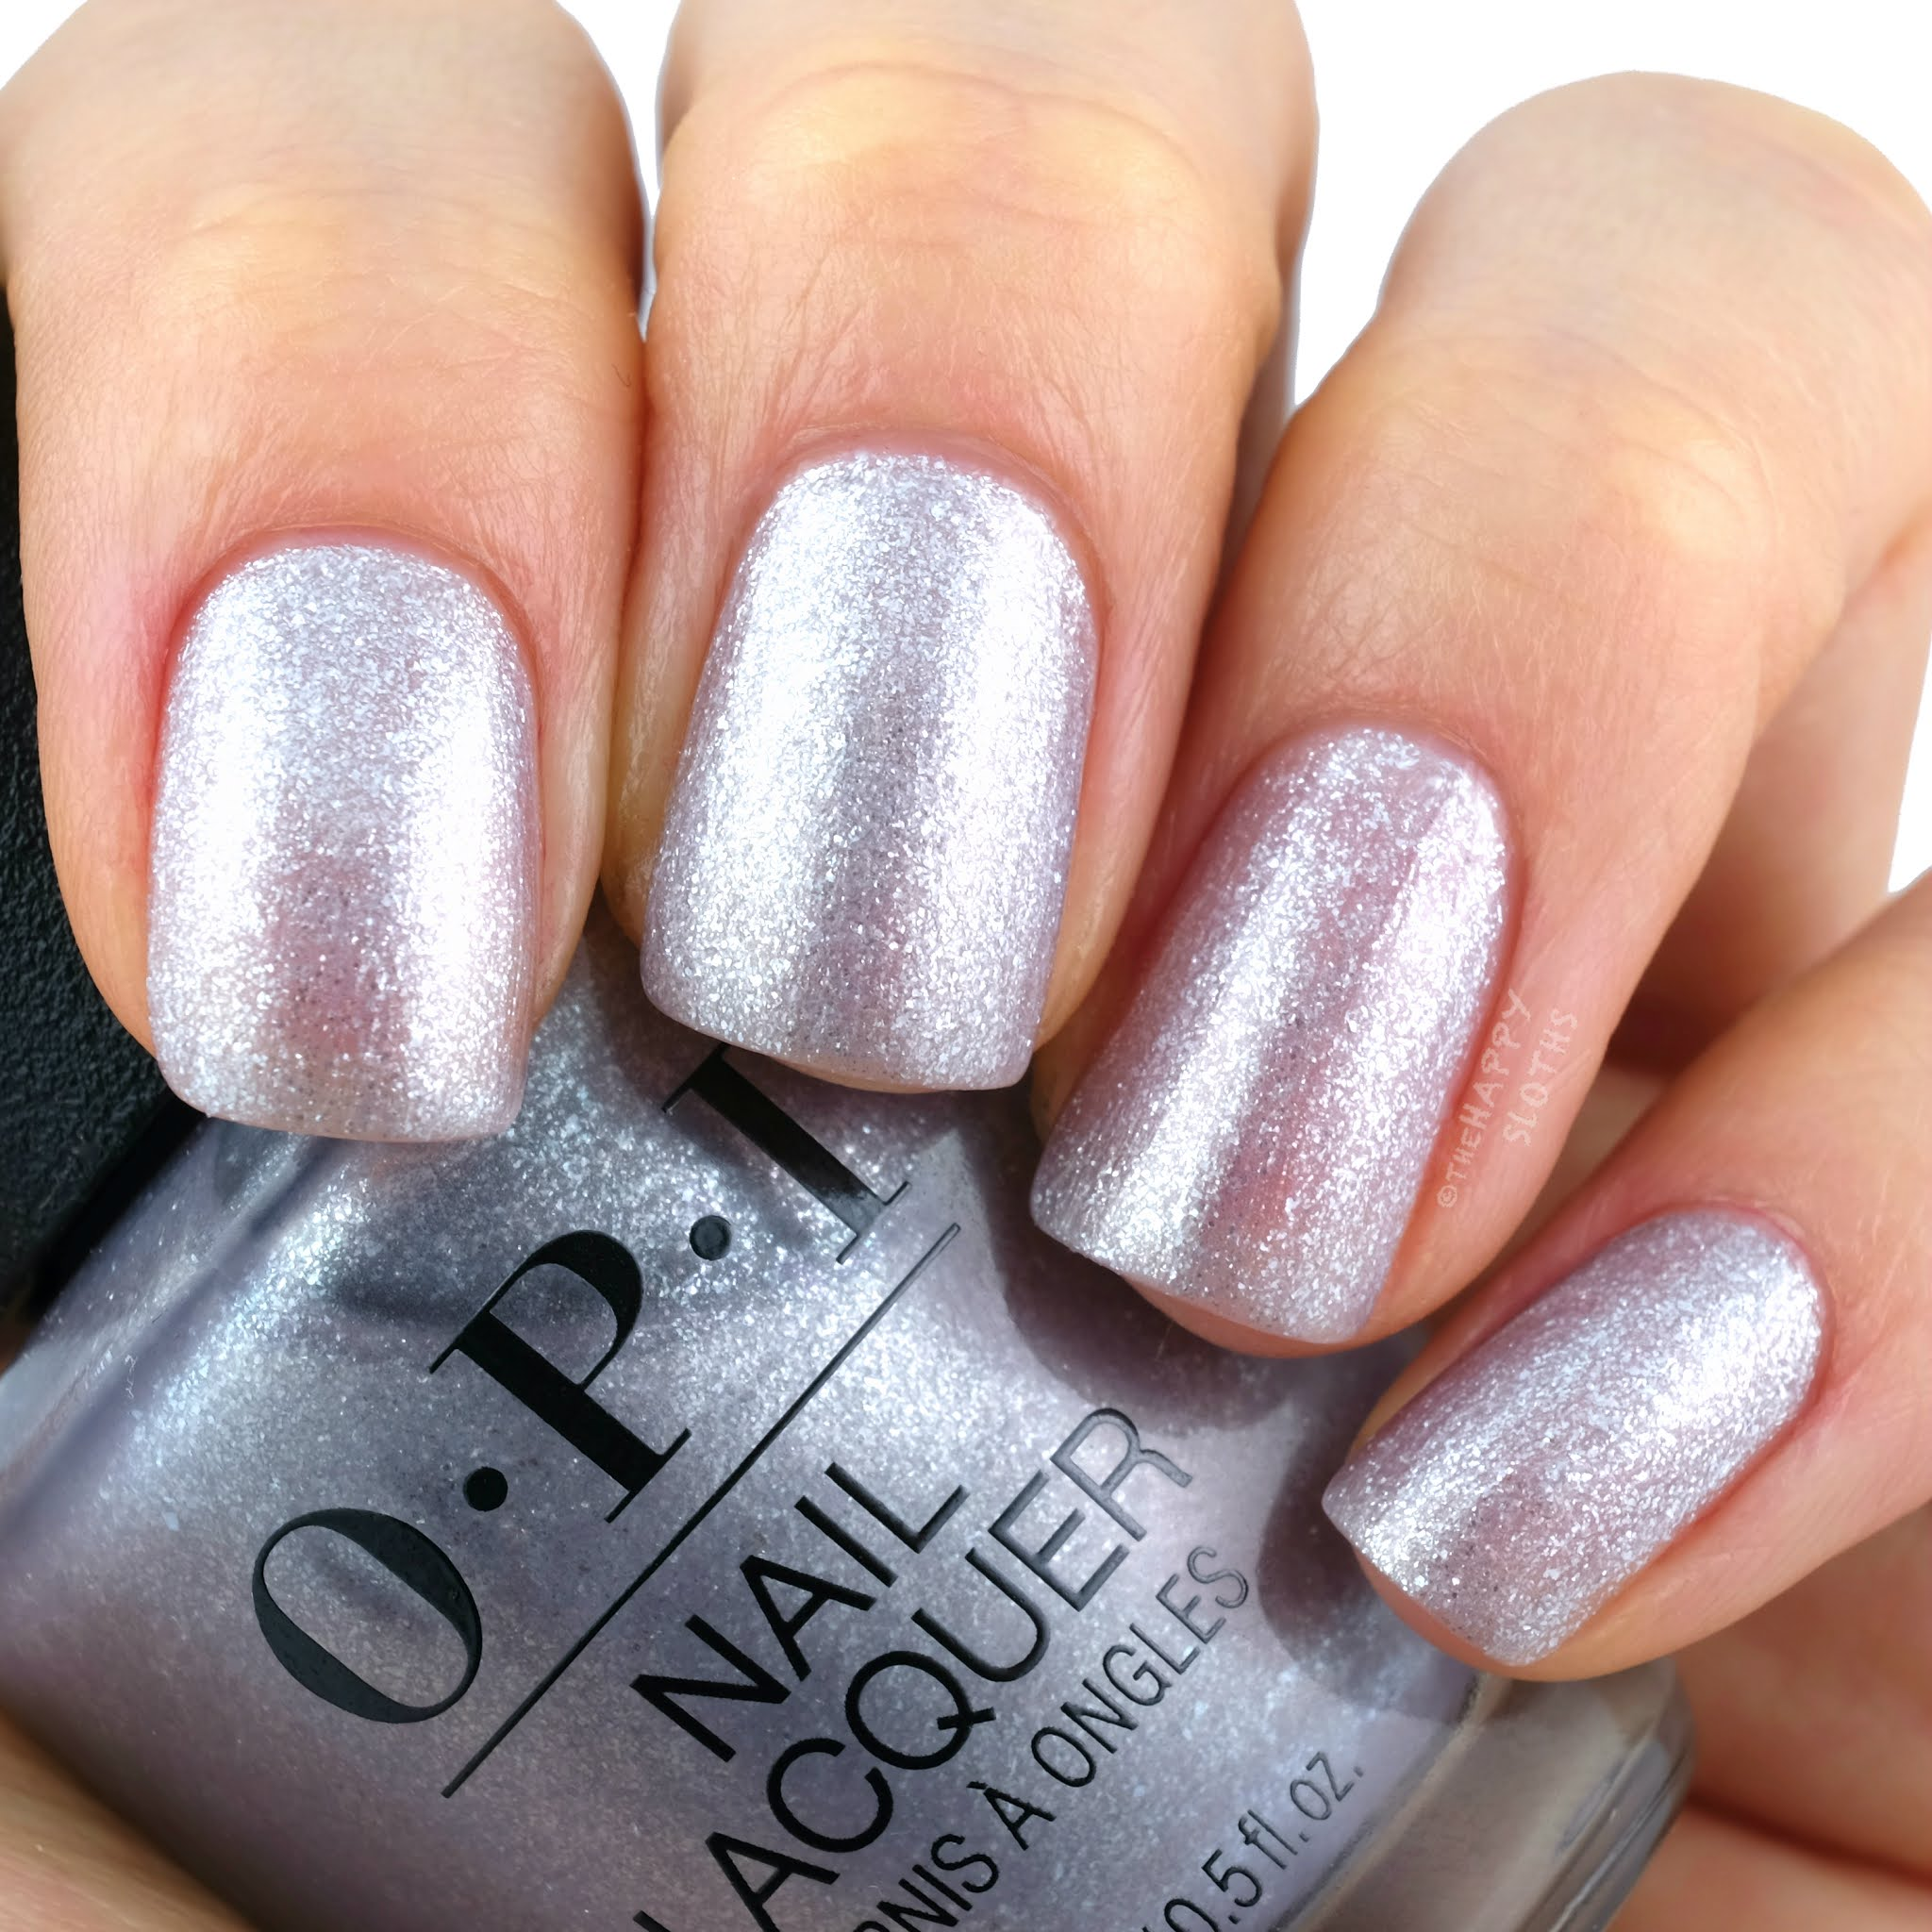 OPI Holiday 2020 Collection | Tinsel, Tinsel 'Lil Star: Review and Swatches